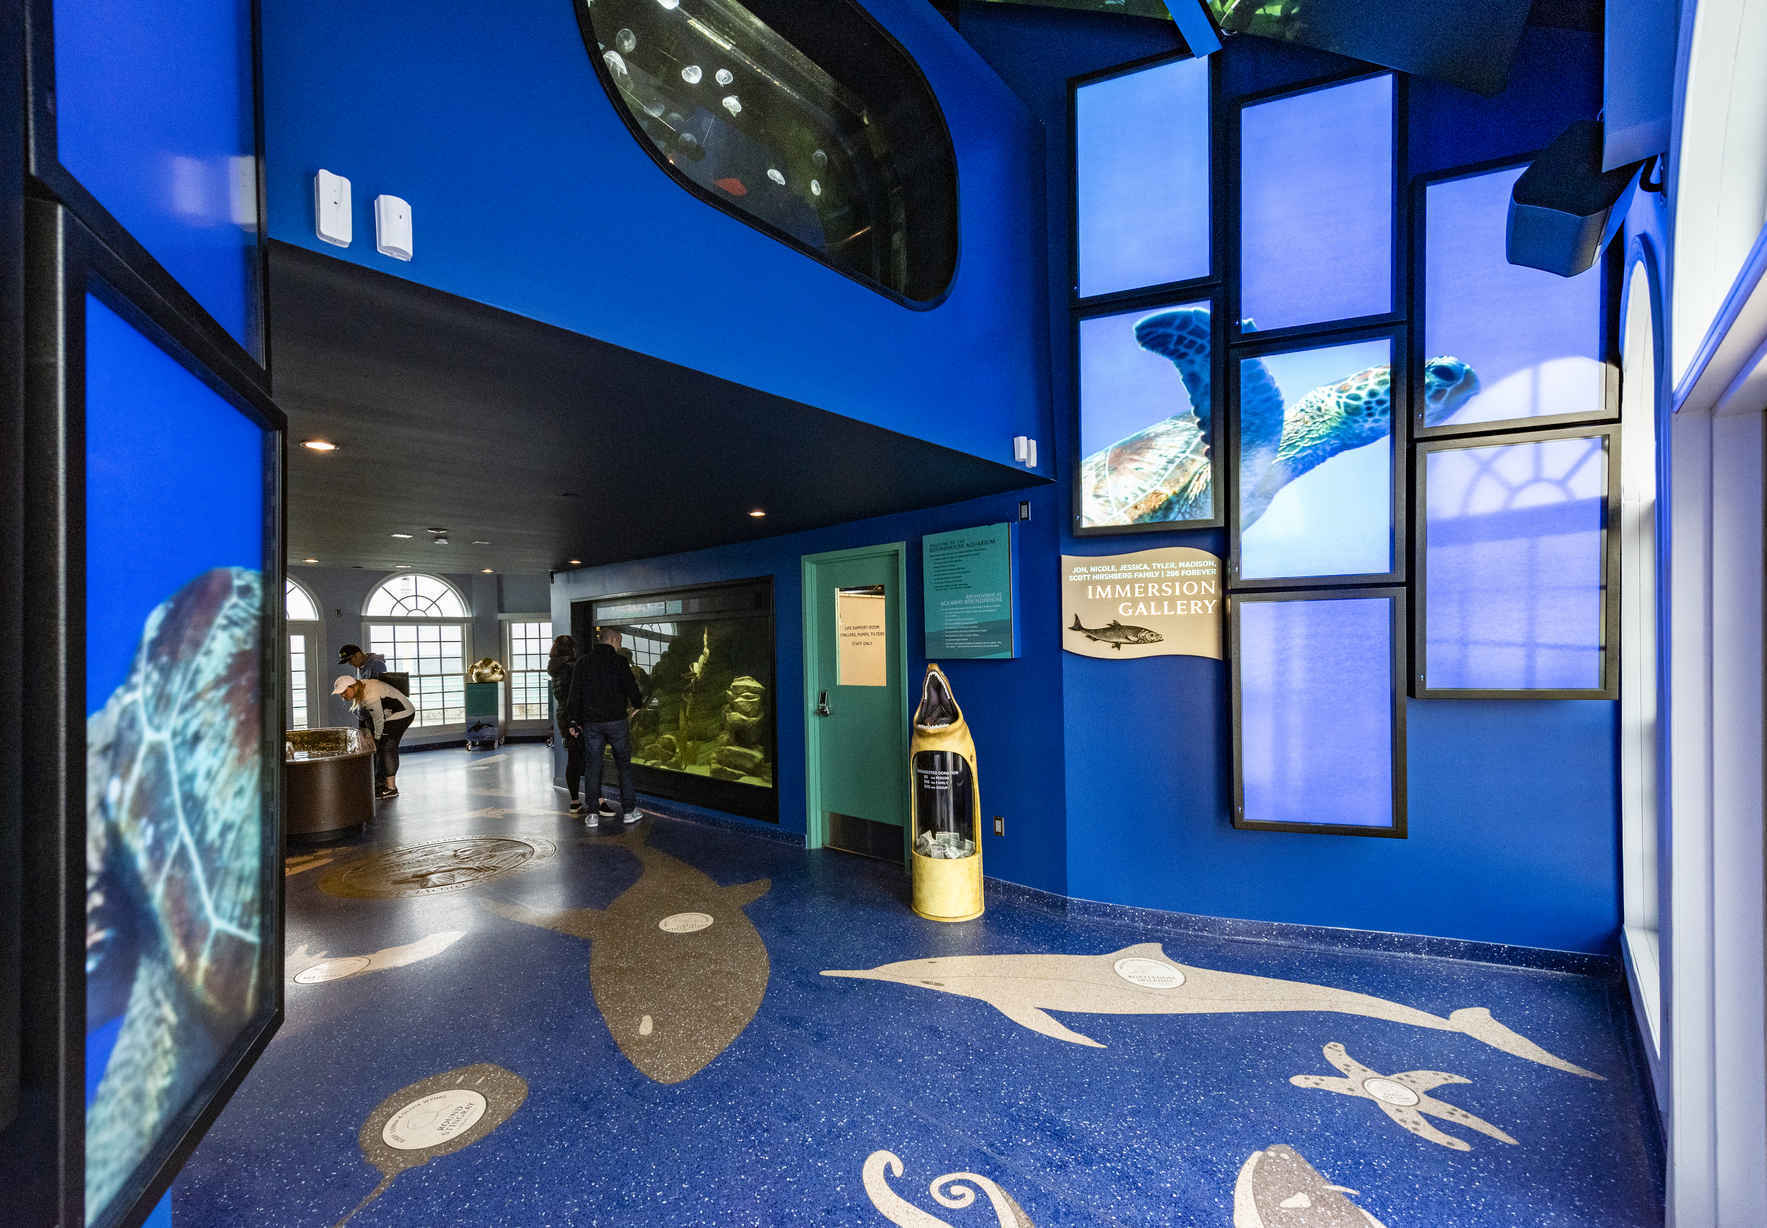 July 8 - Reserve your free entry to the Roundhouse Aquarium image